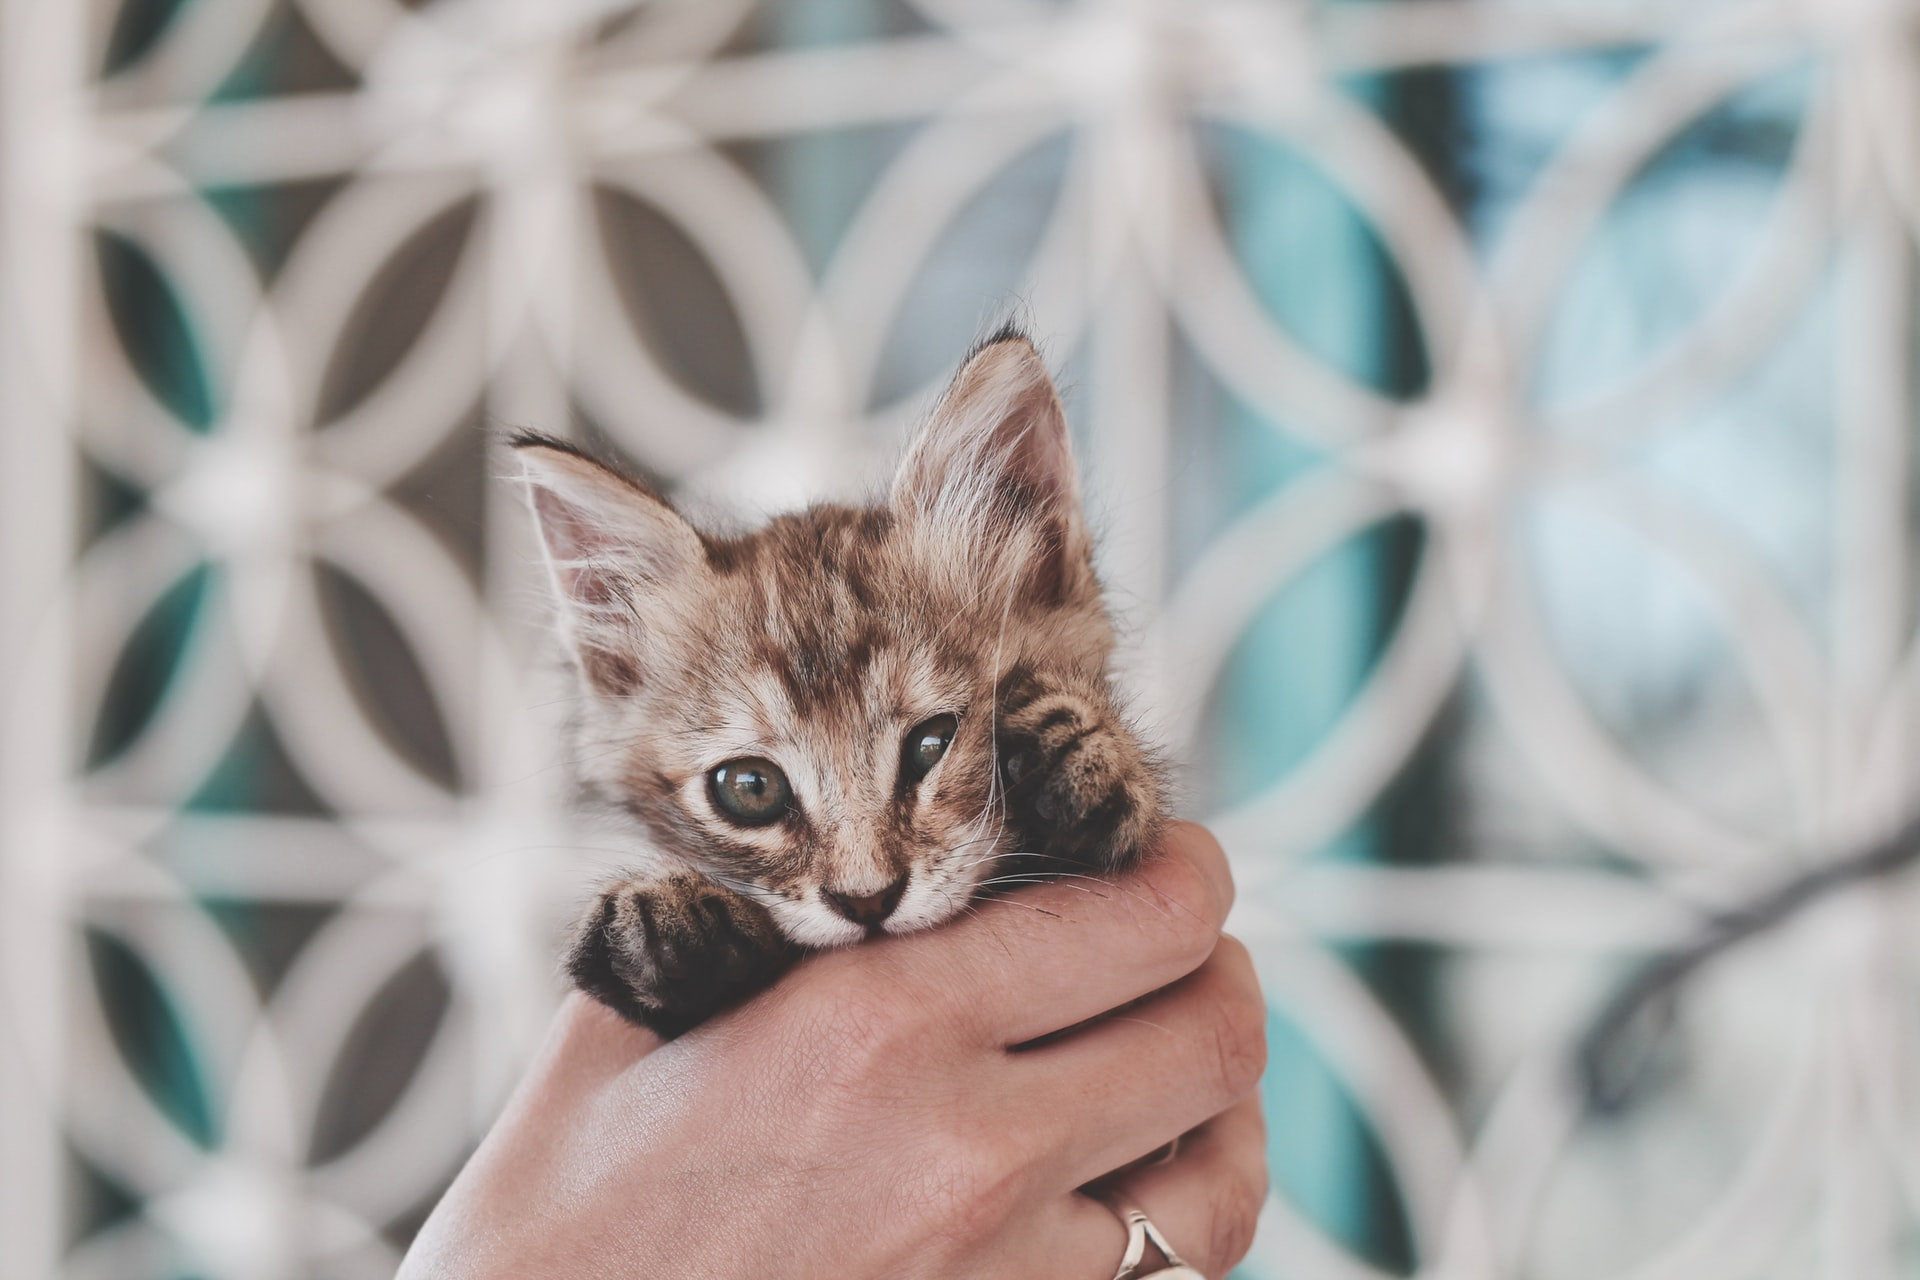 Kitten being held